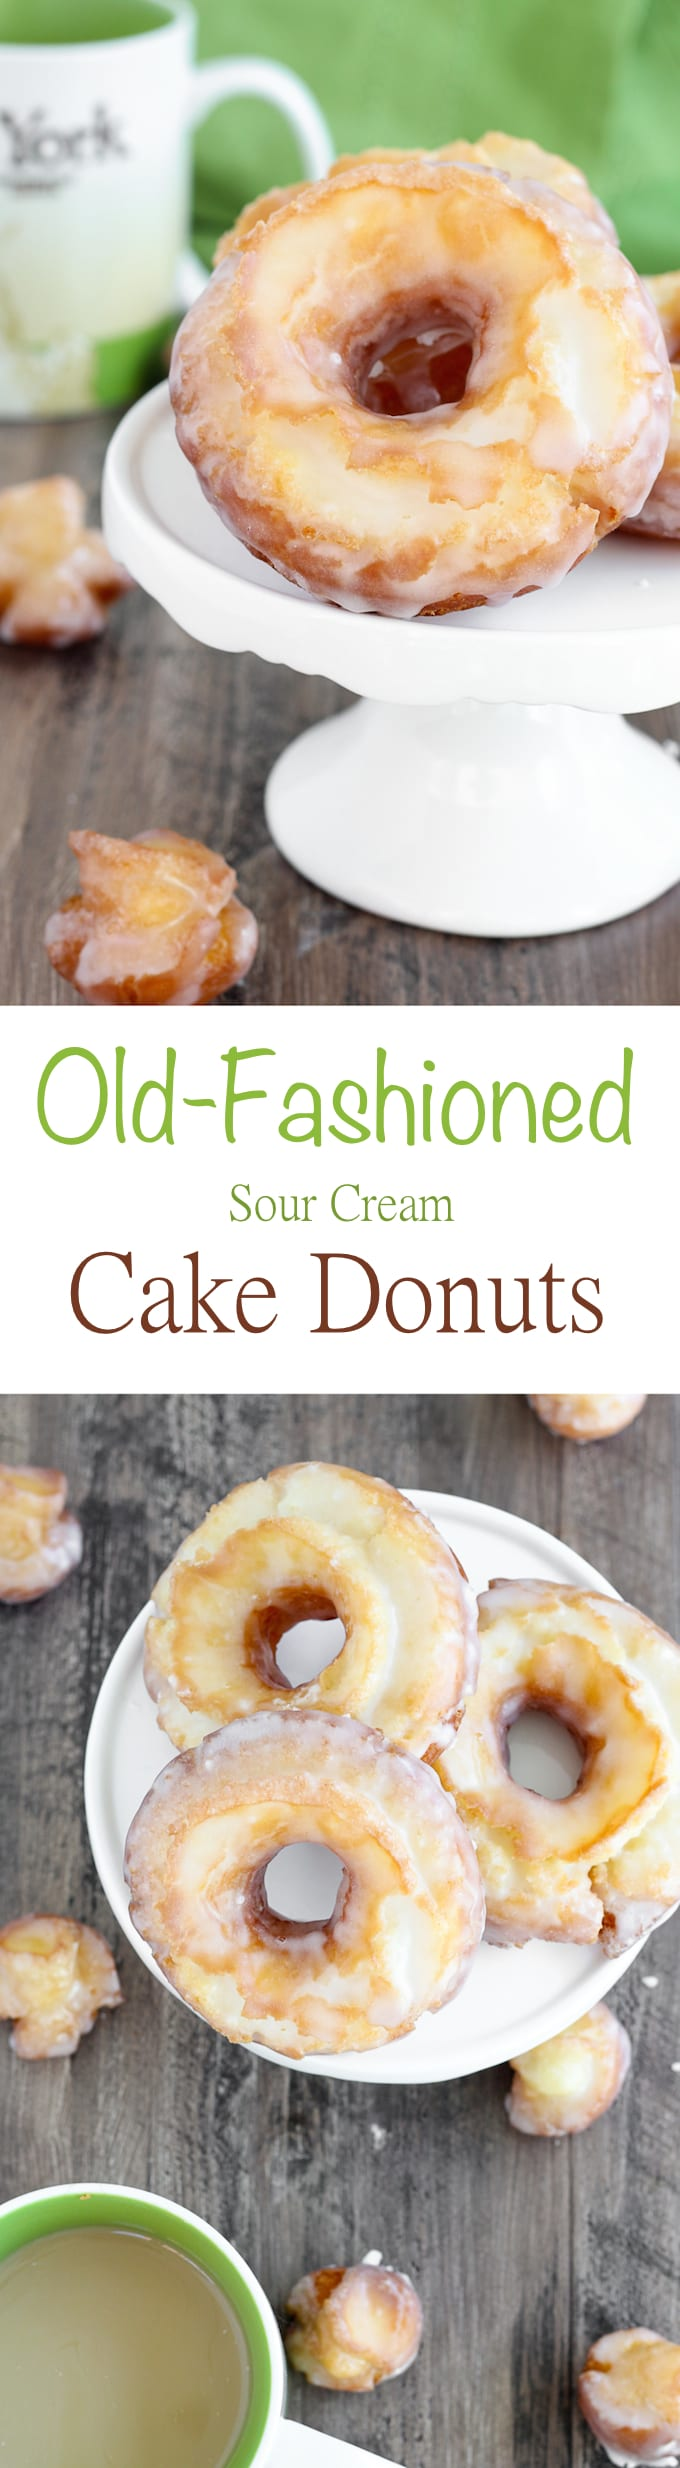 Old Fashioned Sour Cream Cake Donuts